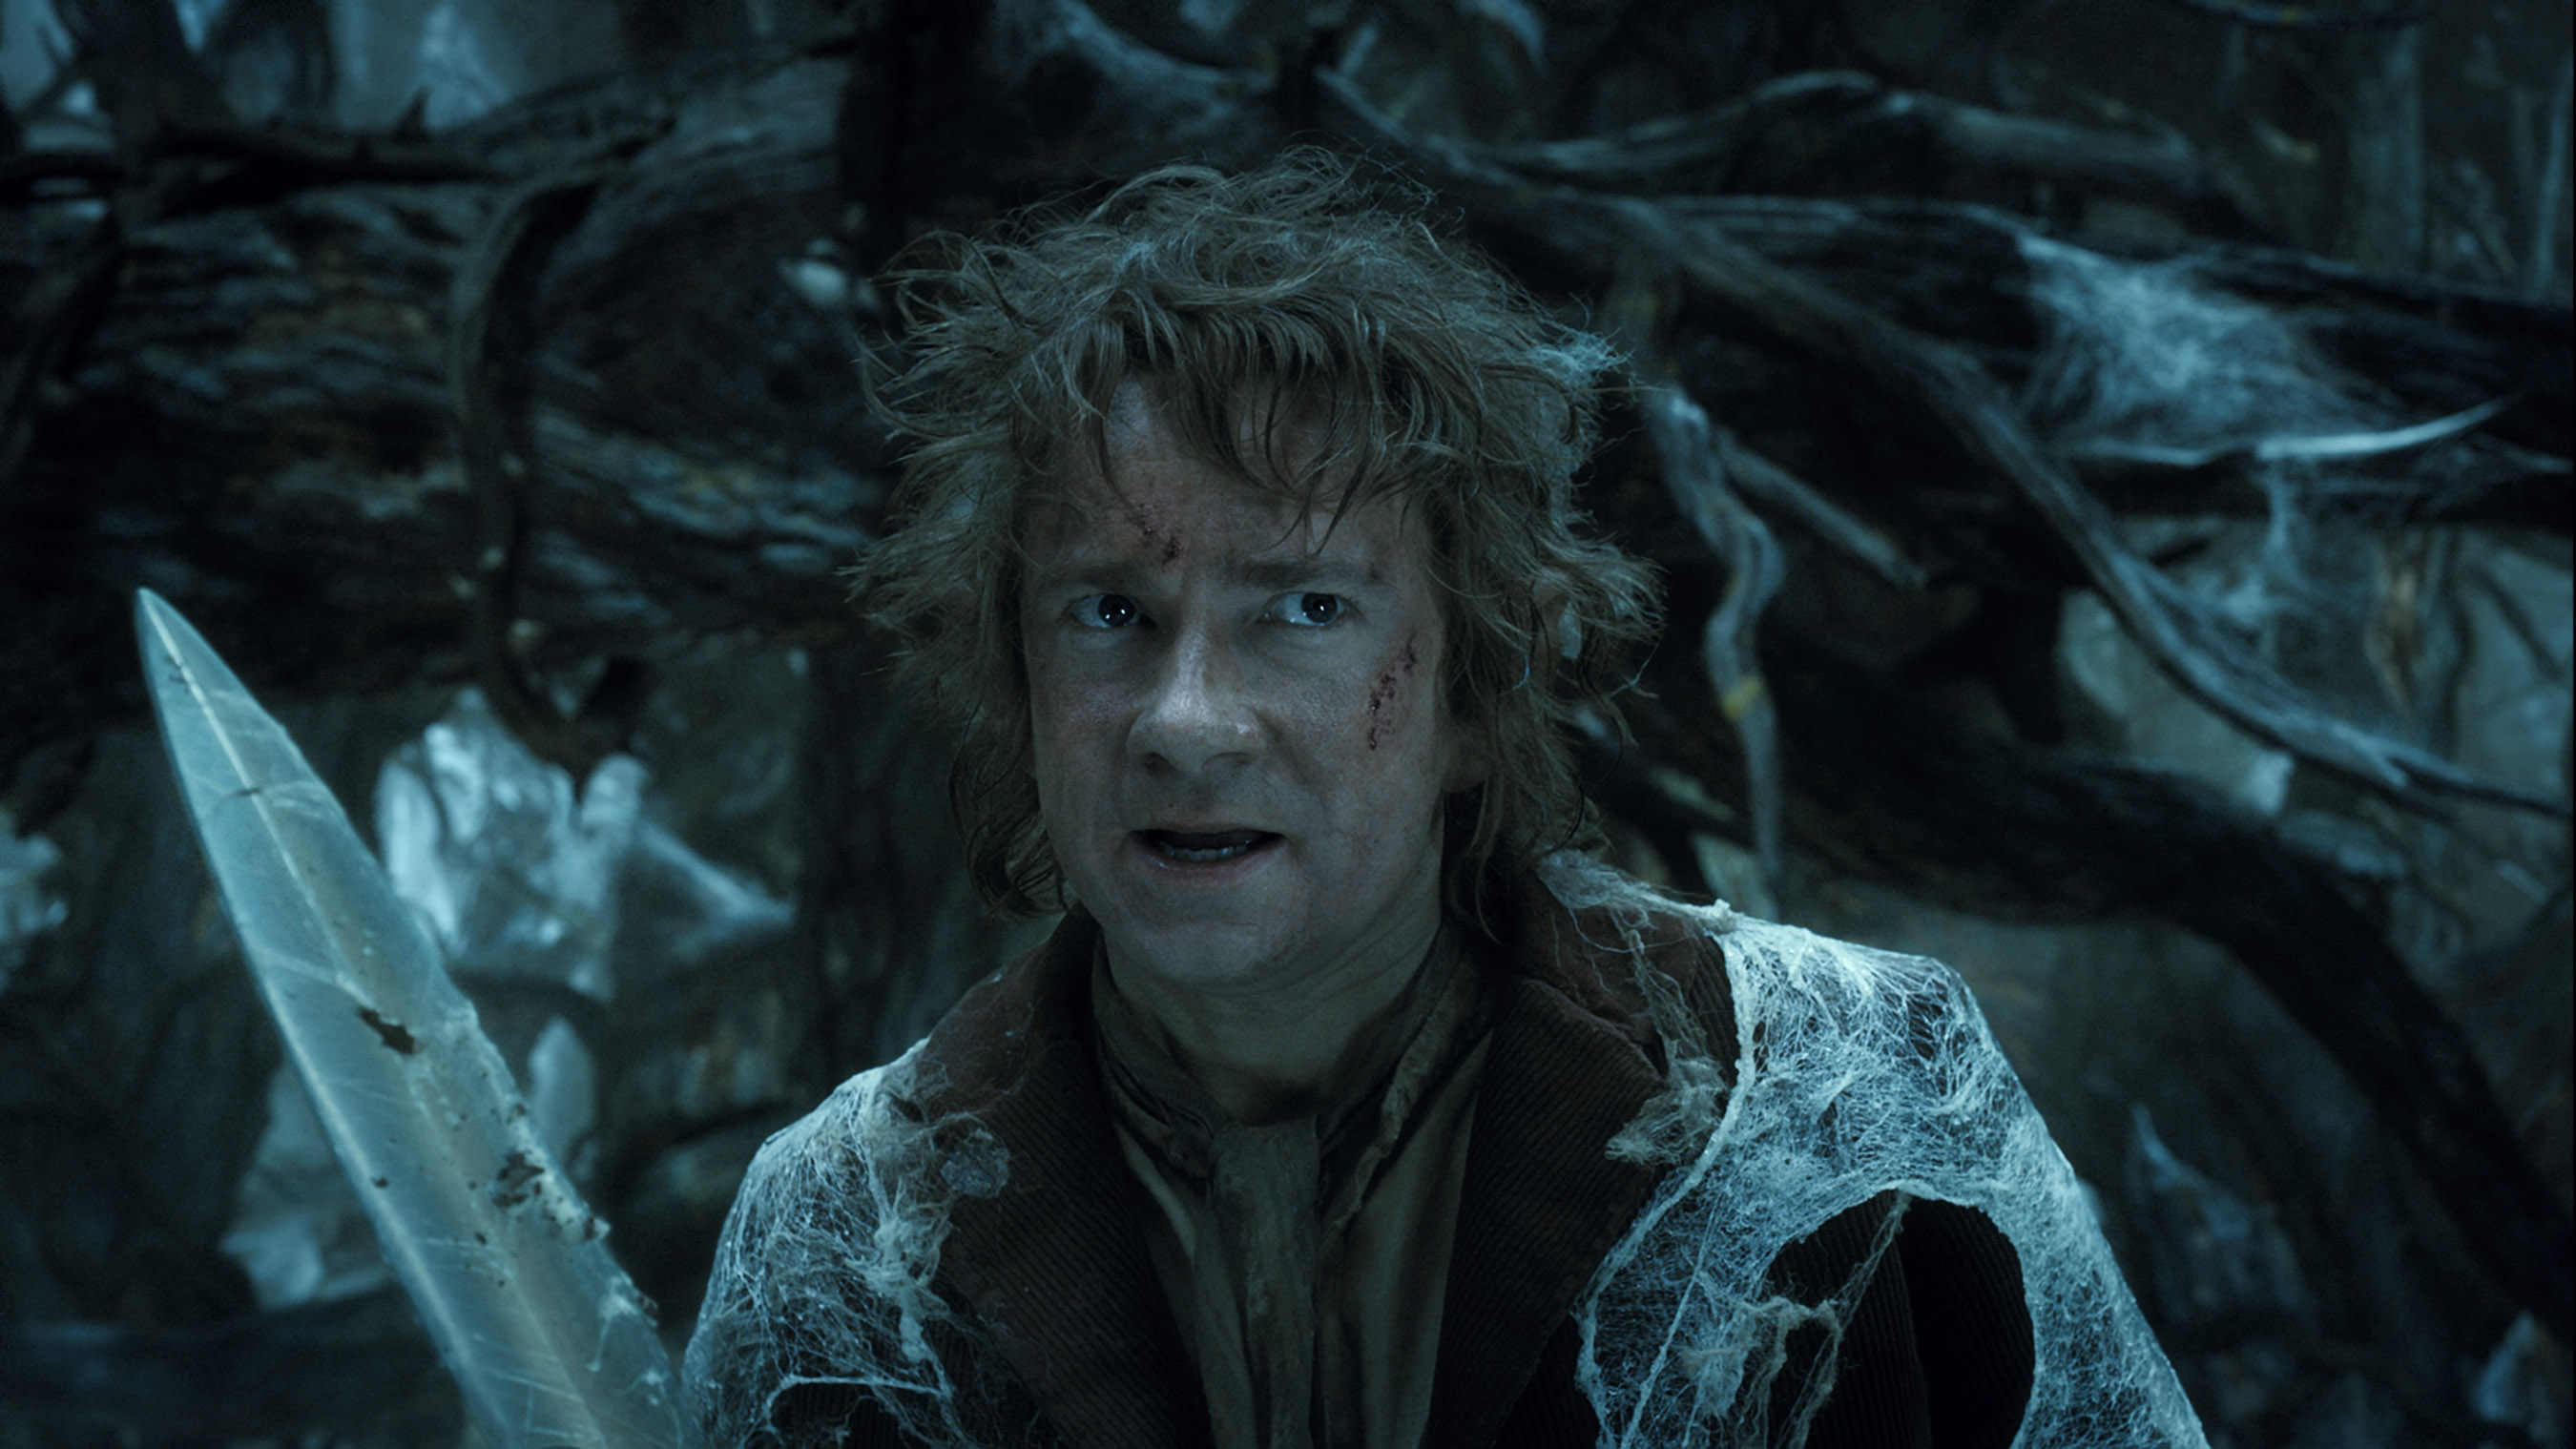 The Hobbit The Desolation Of Smaug 2013 Toomuchnoiseblog